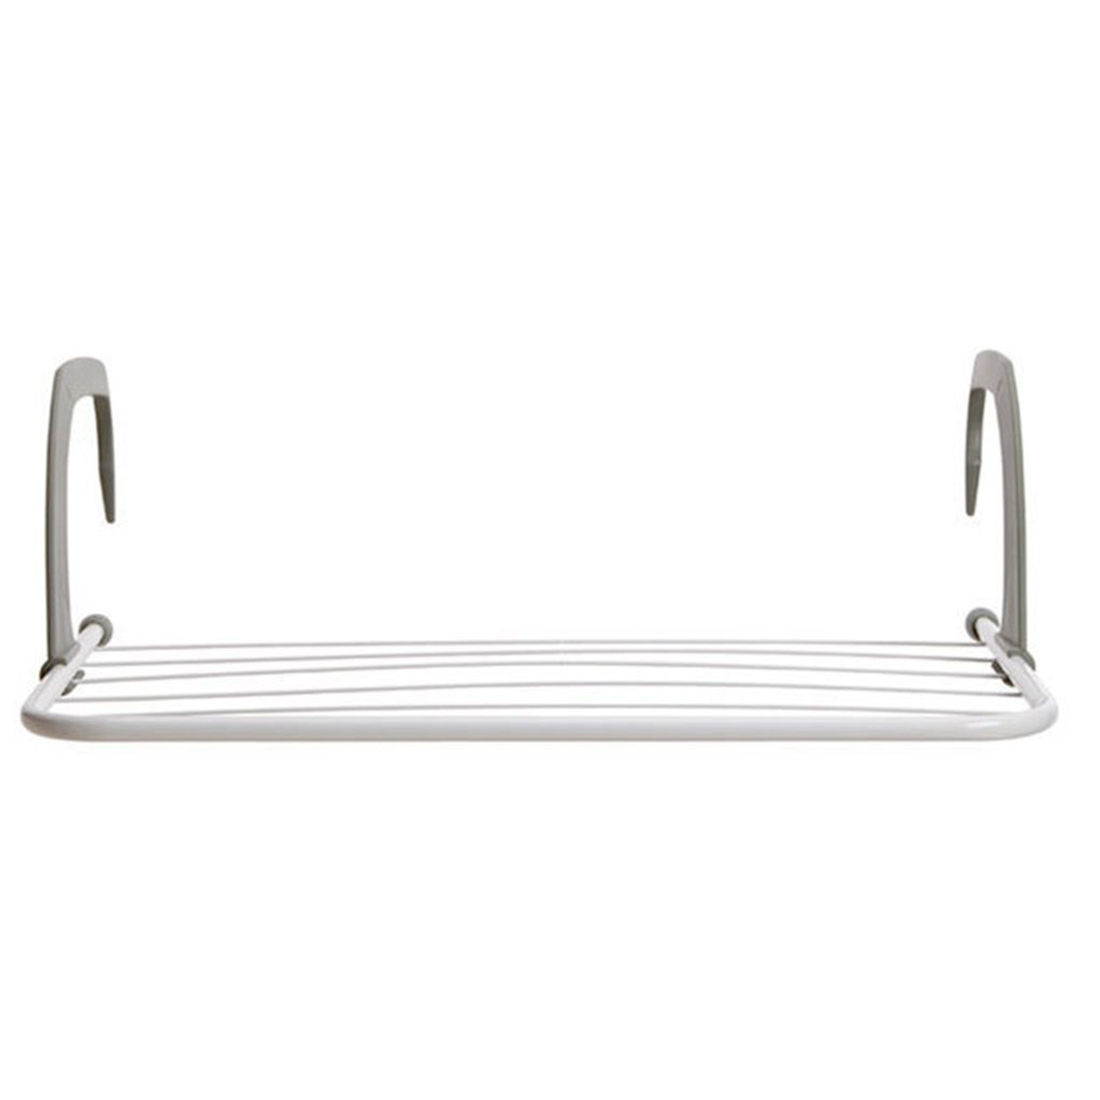 5 bar Metal Portable radiator hanger clothes dryer Airer rail towel holder